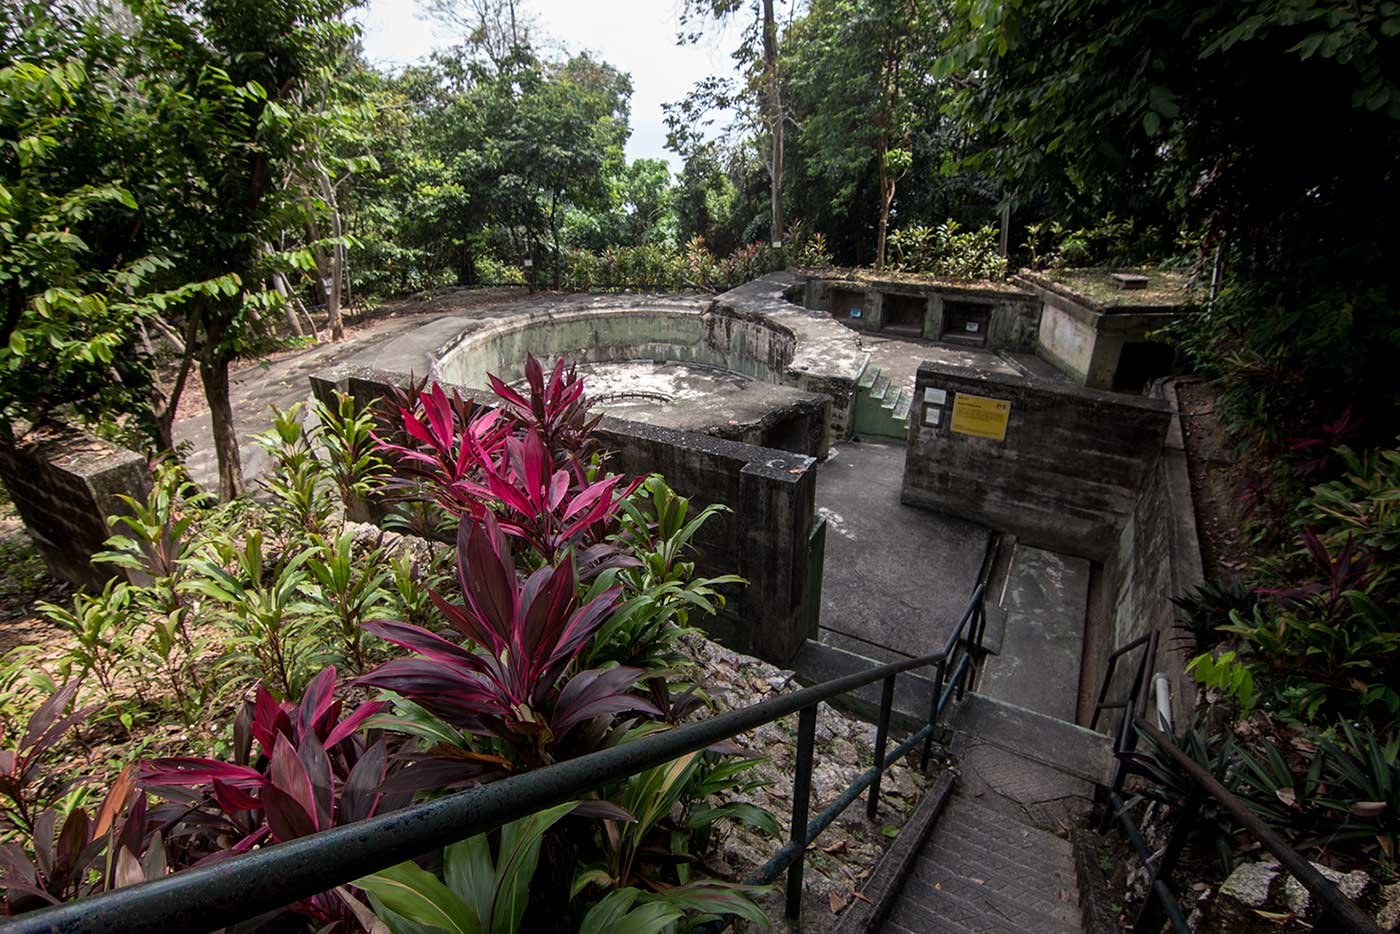 An empty gun battery, and its former munitions depot. Penang War Museum, Malaysia.